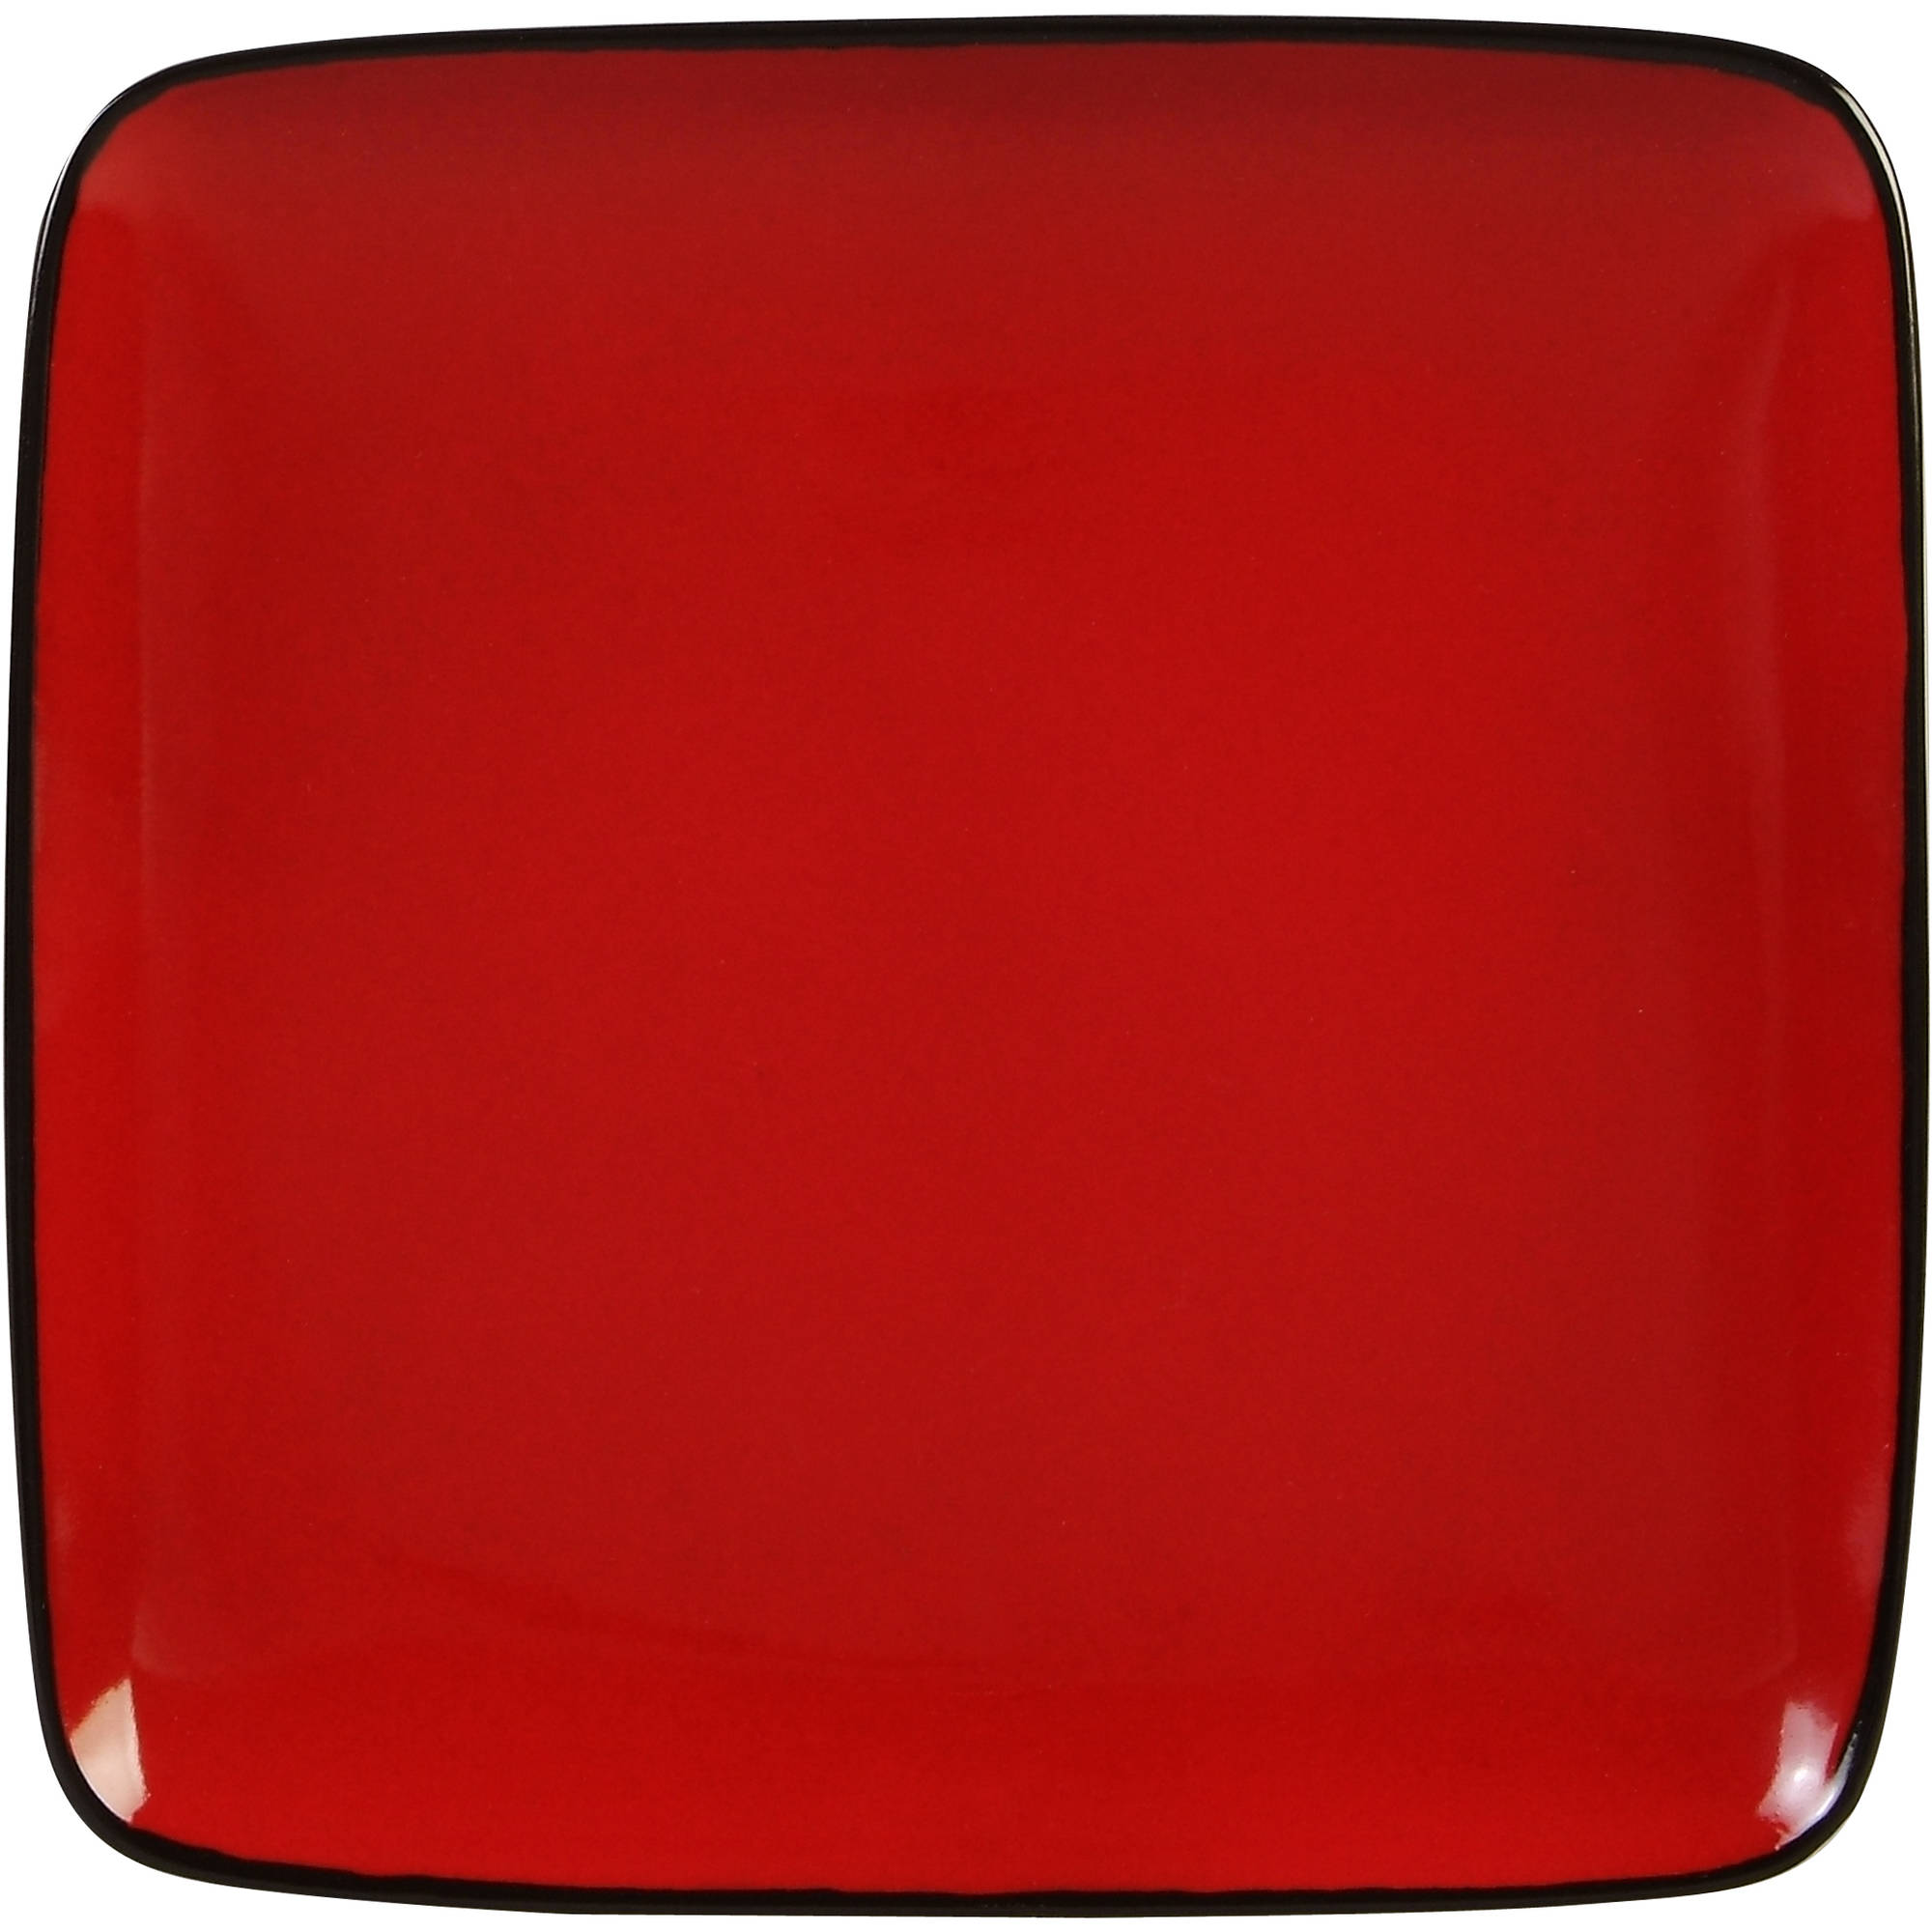 sc 1 st  Walmart : red square dinnerware sets - Pezcame.Com